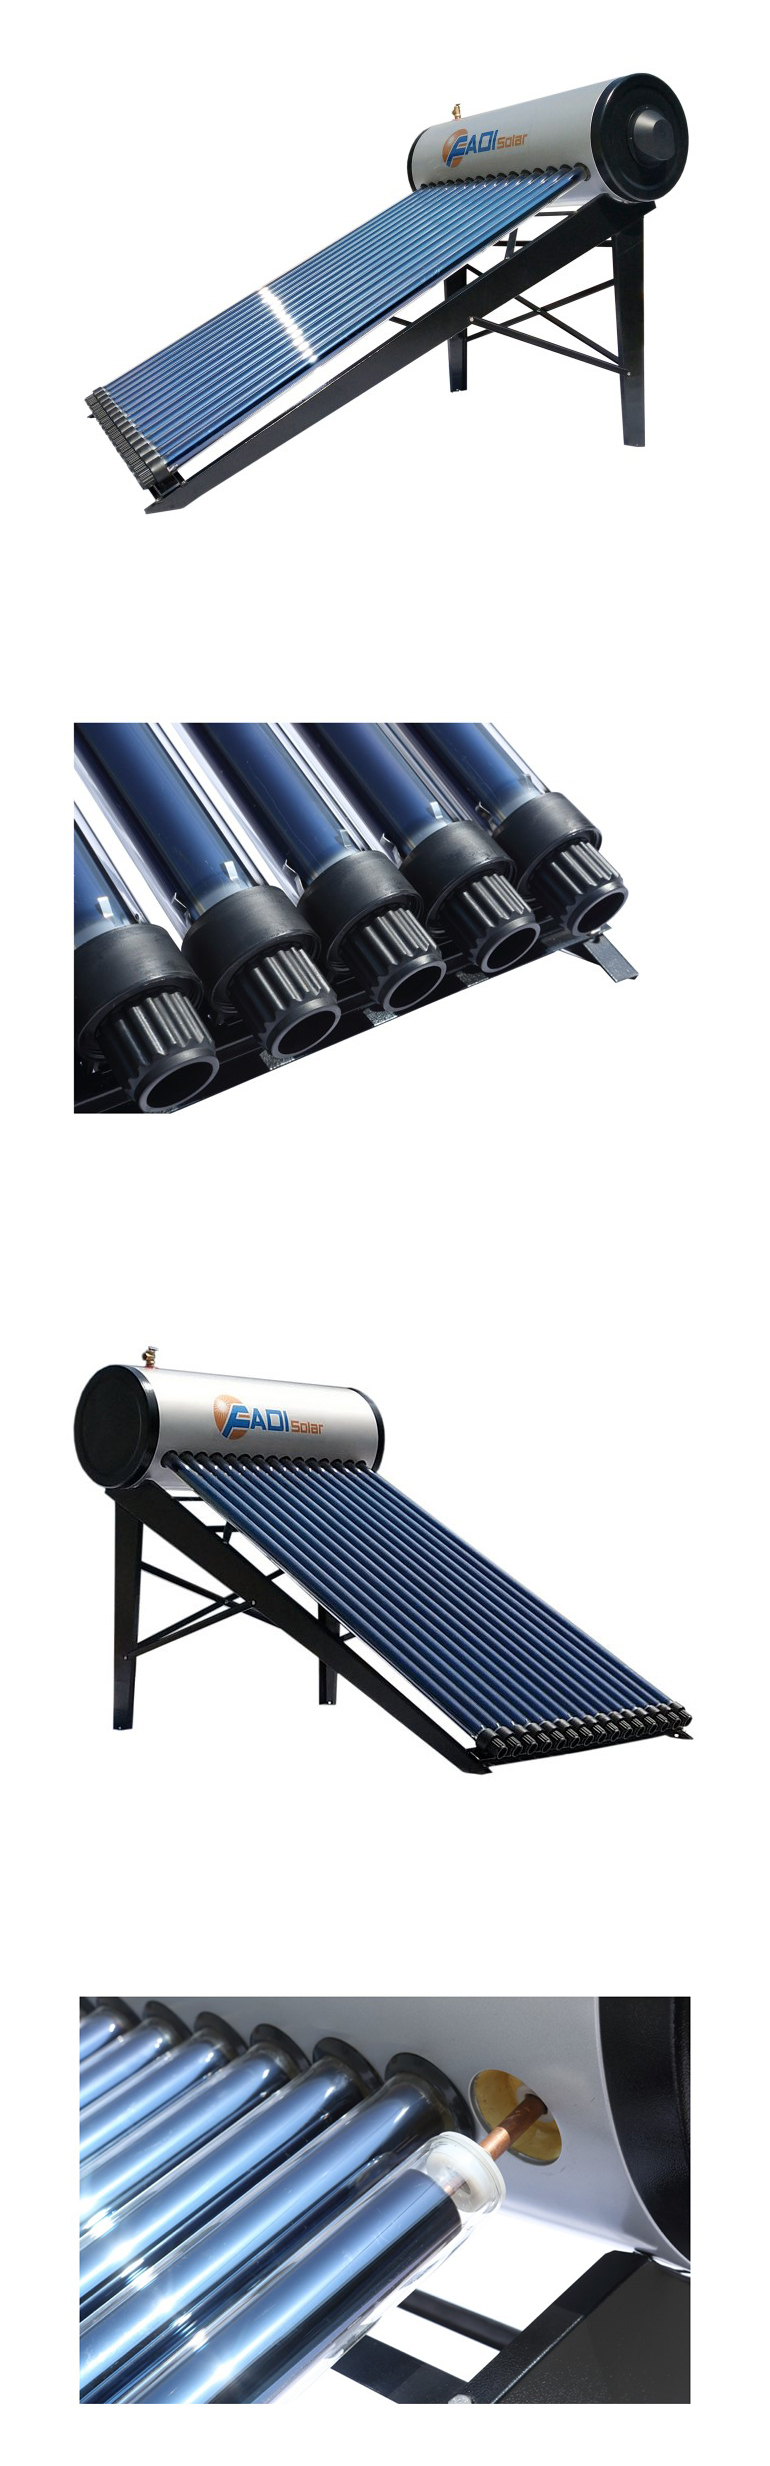 EN12976 CE Compact High Pressurized Solar Hot Water Heater (150/200/300L)